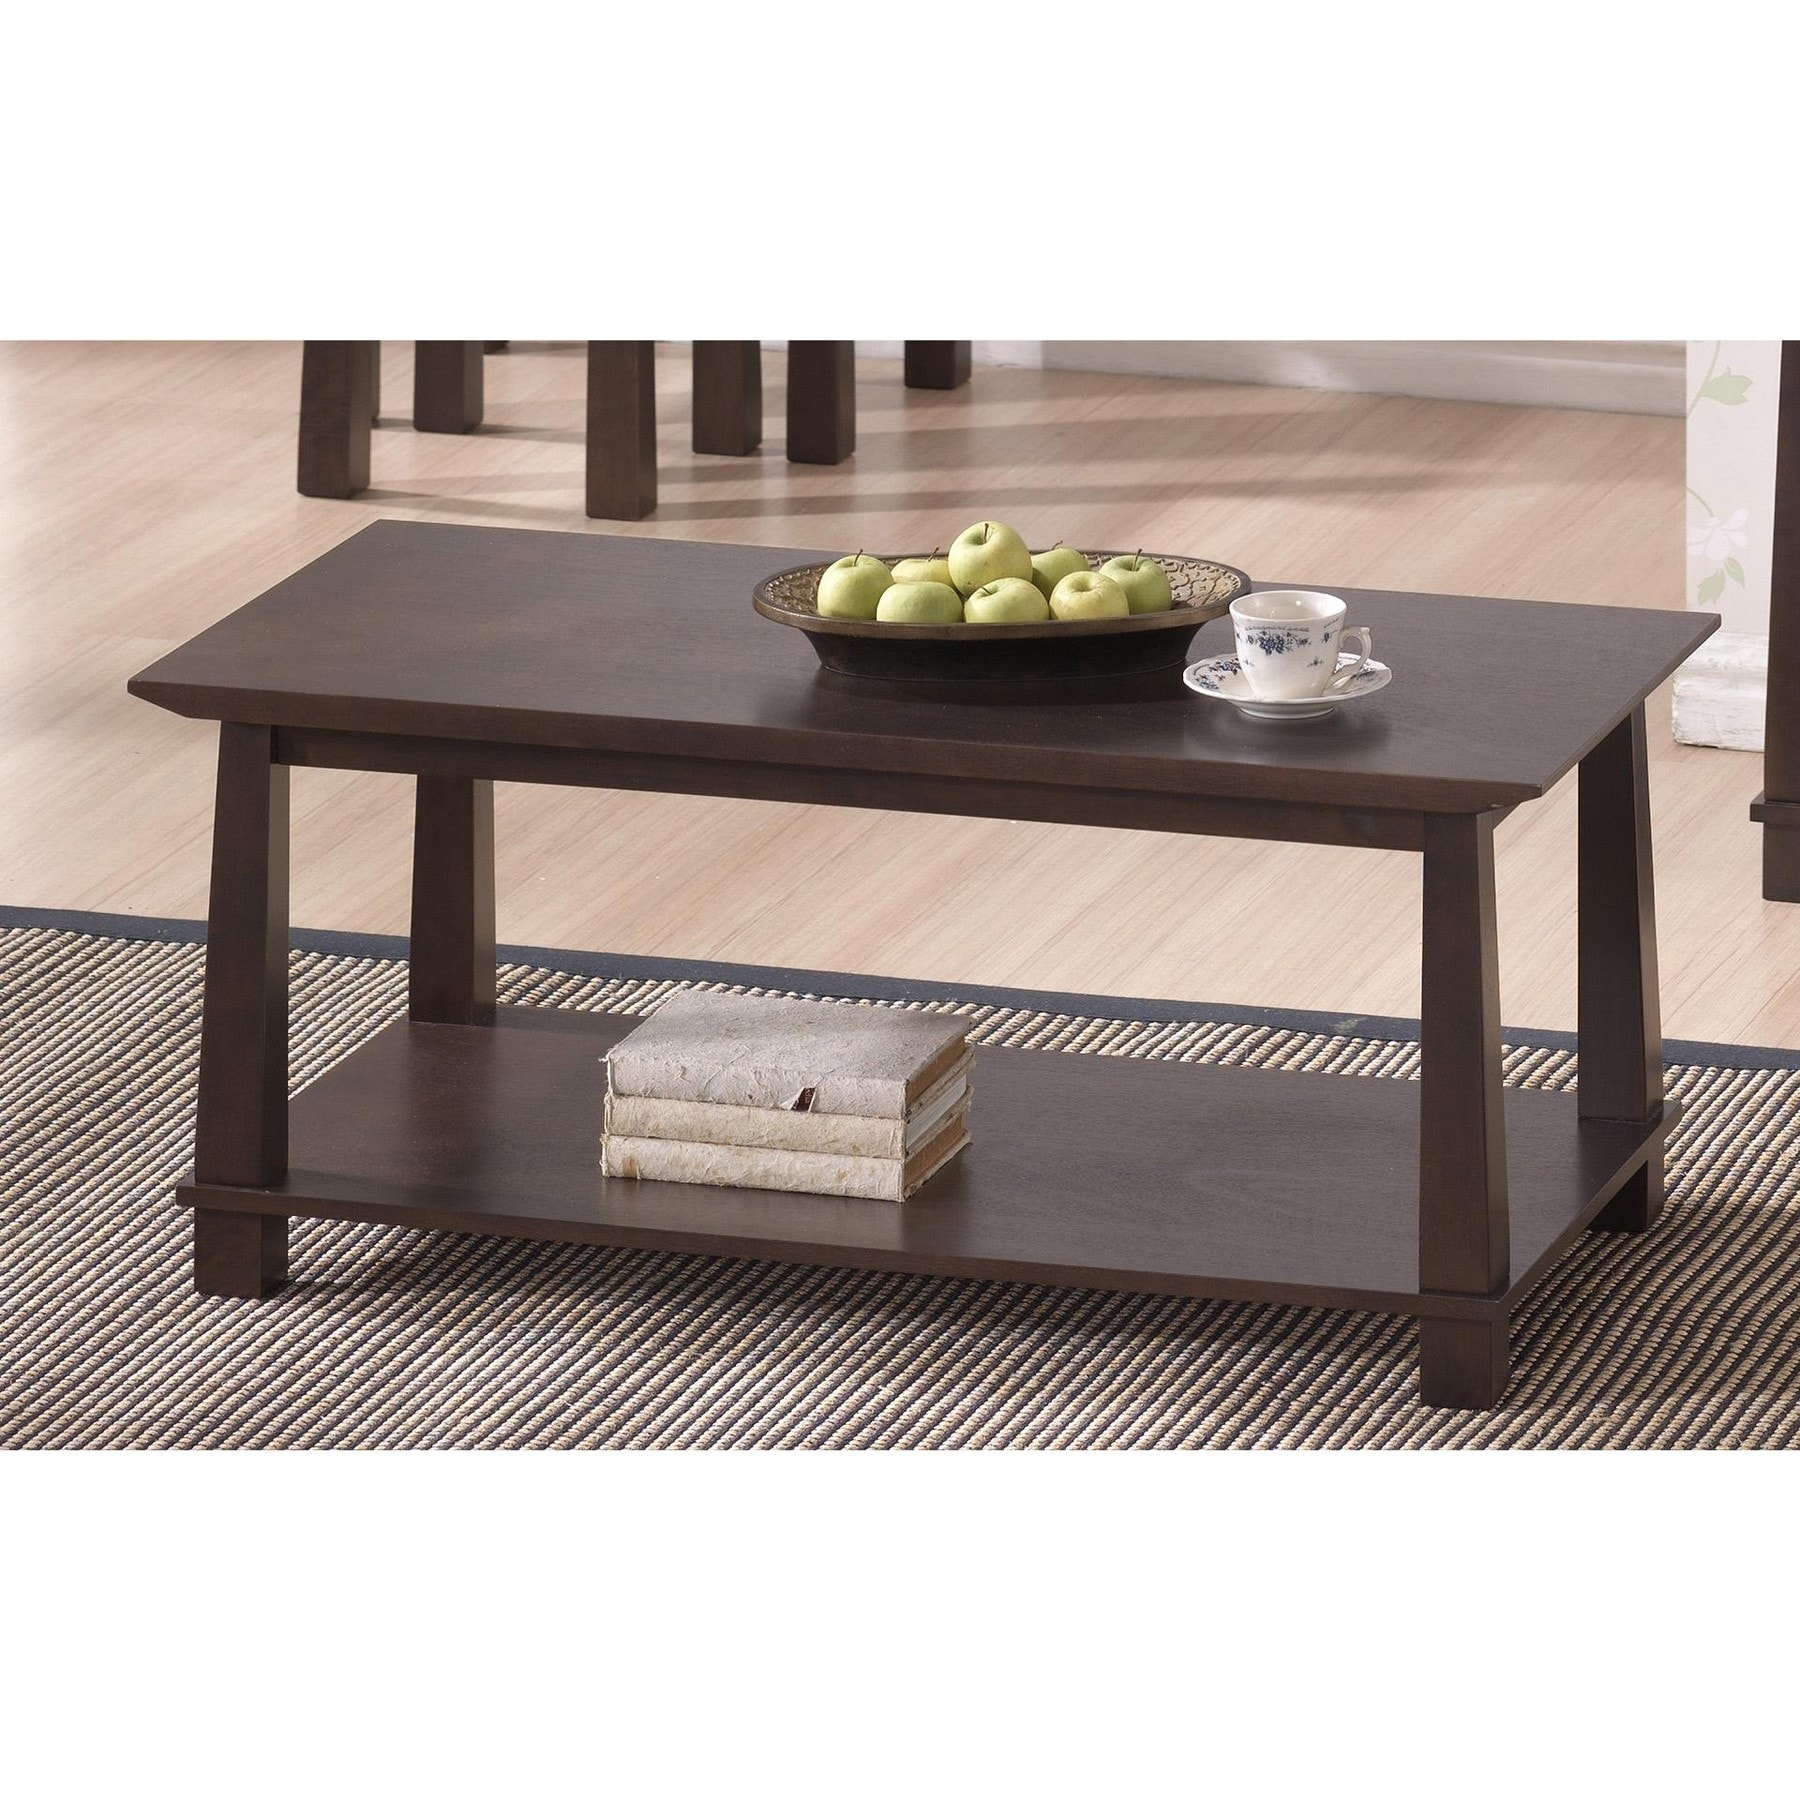 havana brown wood modern coffee table  free shipping today  overstockcom . havana brown wood modern coffee table  free shipping today